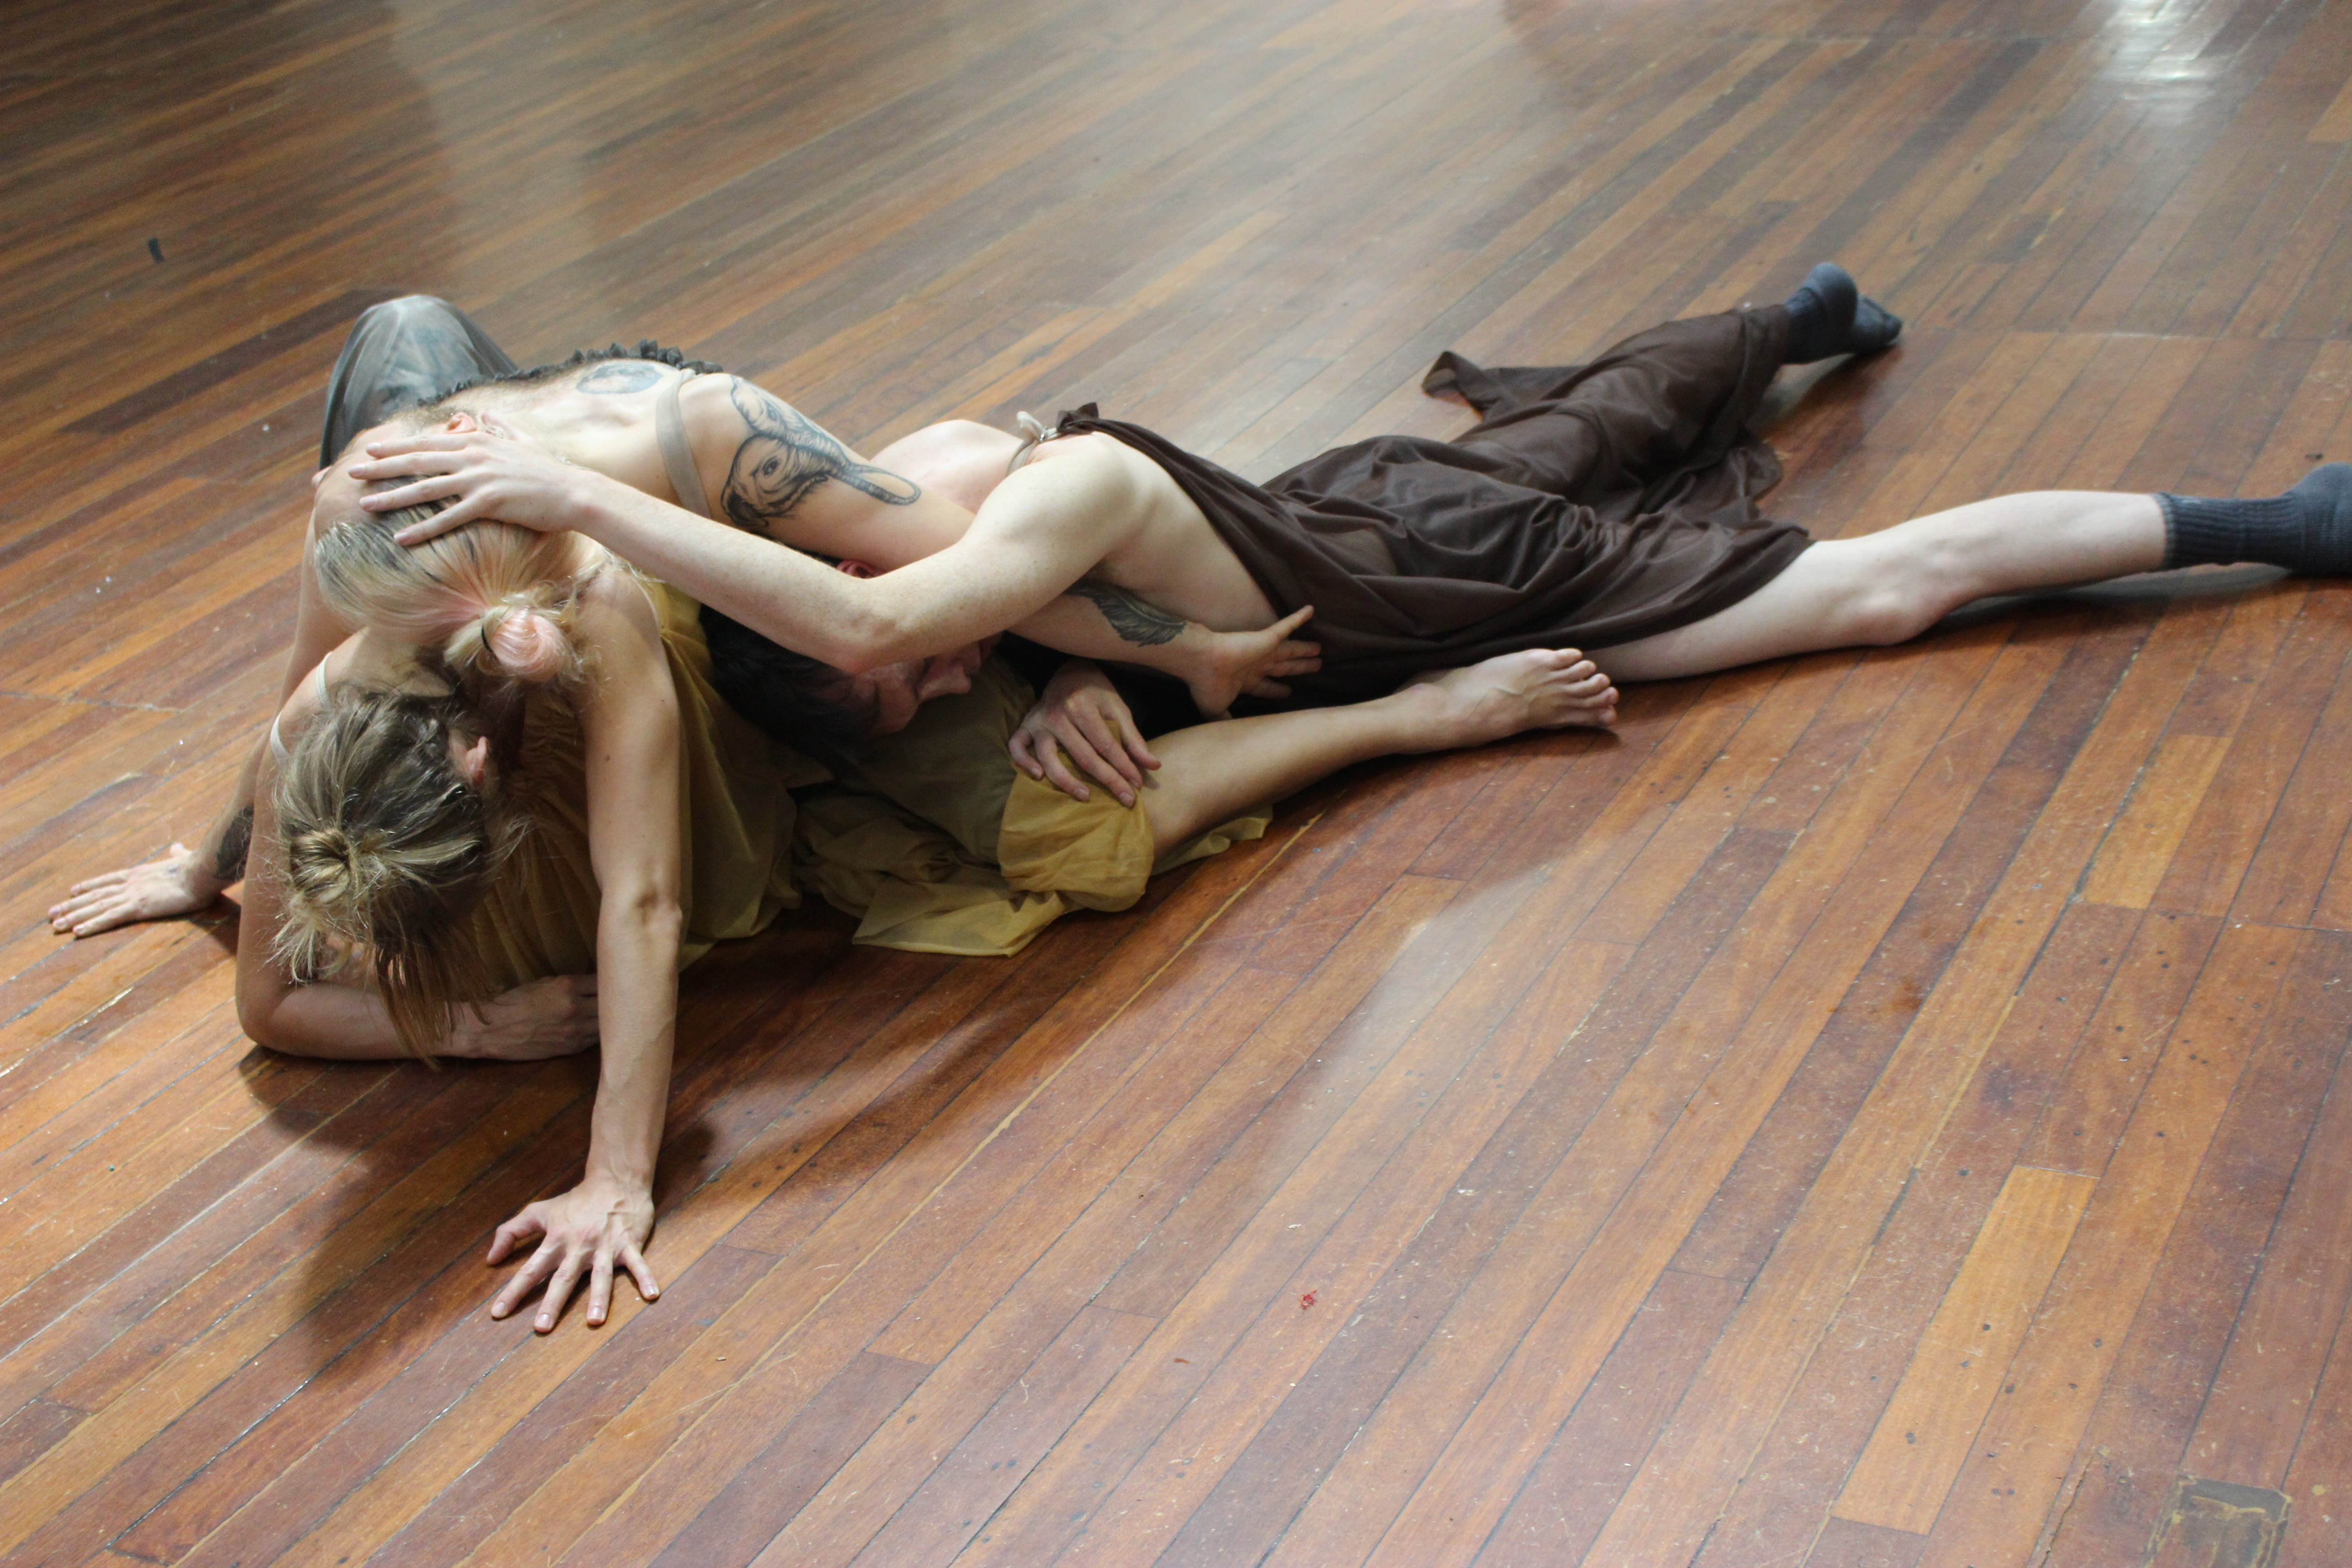 2018.<br> In chorus costume, Tilly, Joshua, Lenny, and Alessandro work on a series of poses to be interspersed throughout a mechanical Nations sequence. Alessandro, who lead the rehearsal, moulded and positioned the dancers such that their limbs were layered and distorted, echoing and displacing the violence played out between the Nations.